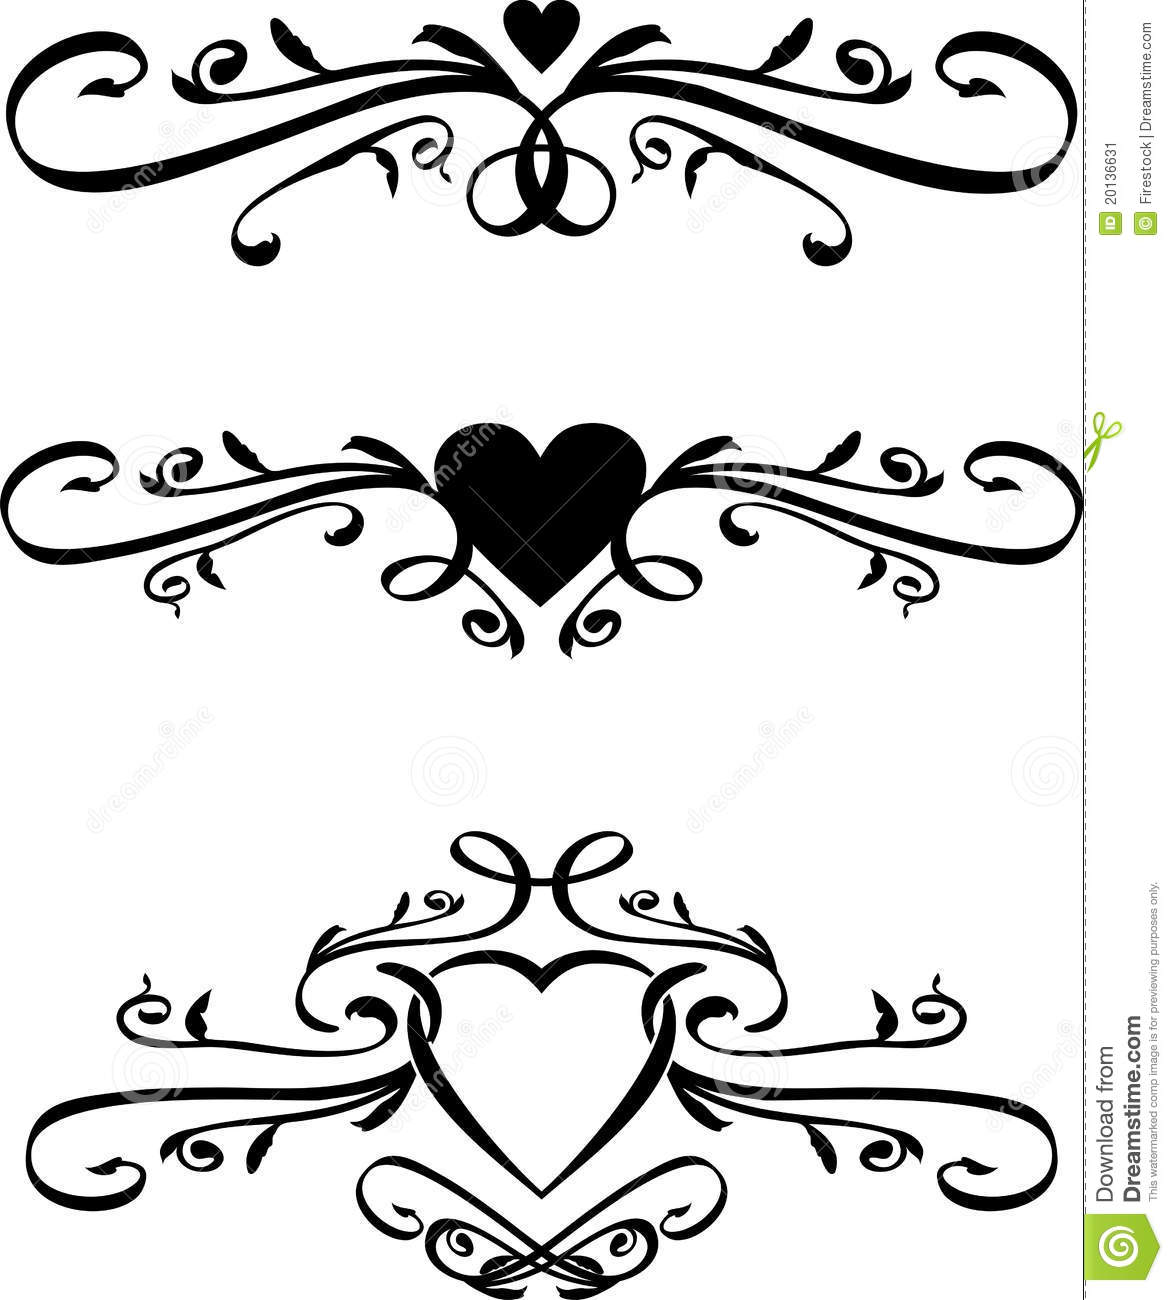 Scroll Drawing: Set Of Vector Heart Scrolls Stock Vector